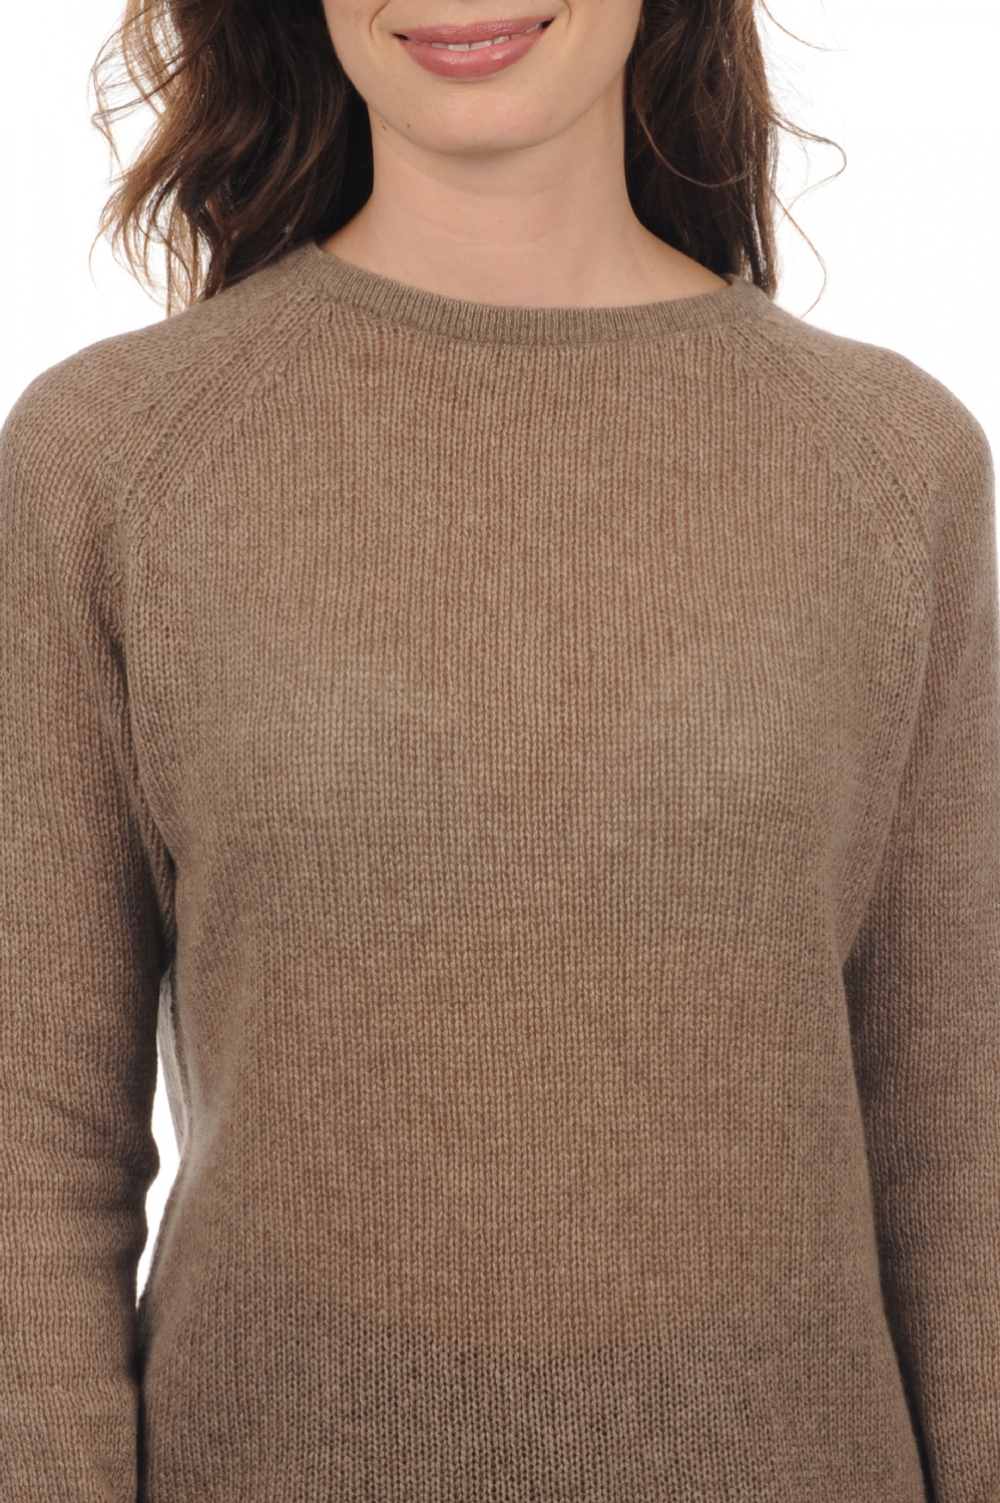 Cachemire pull femme col rond maryama natural brown chine xs